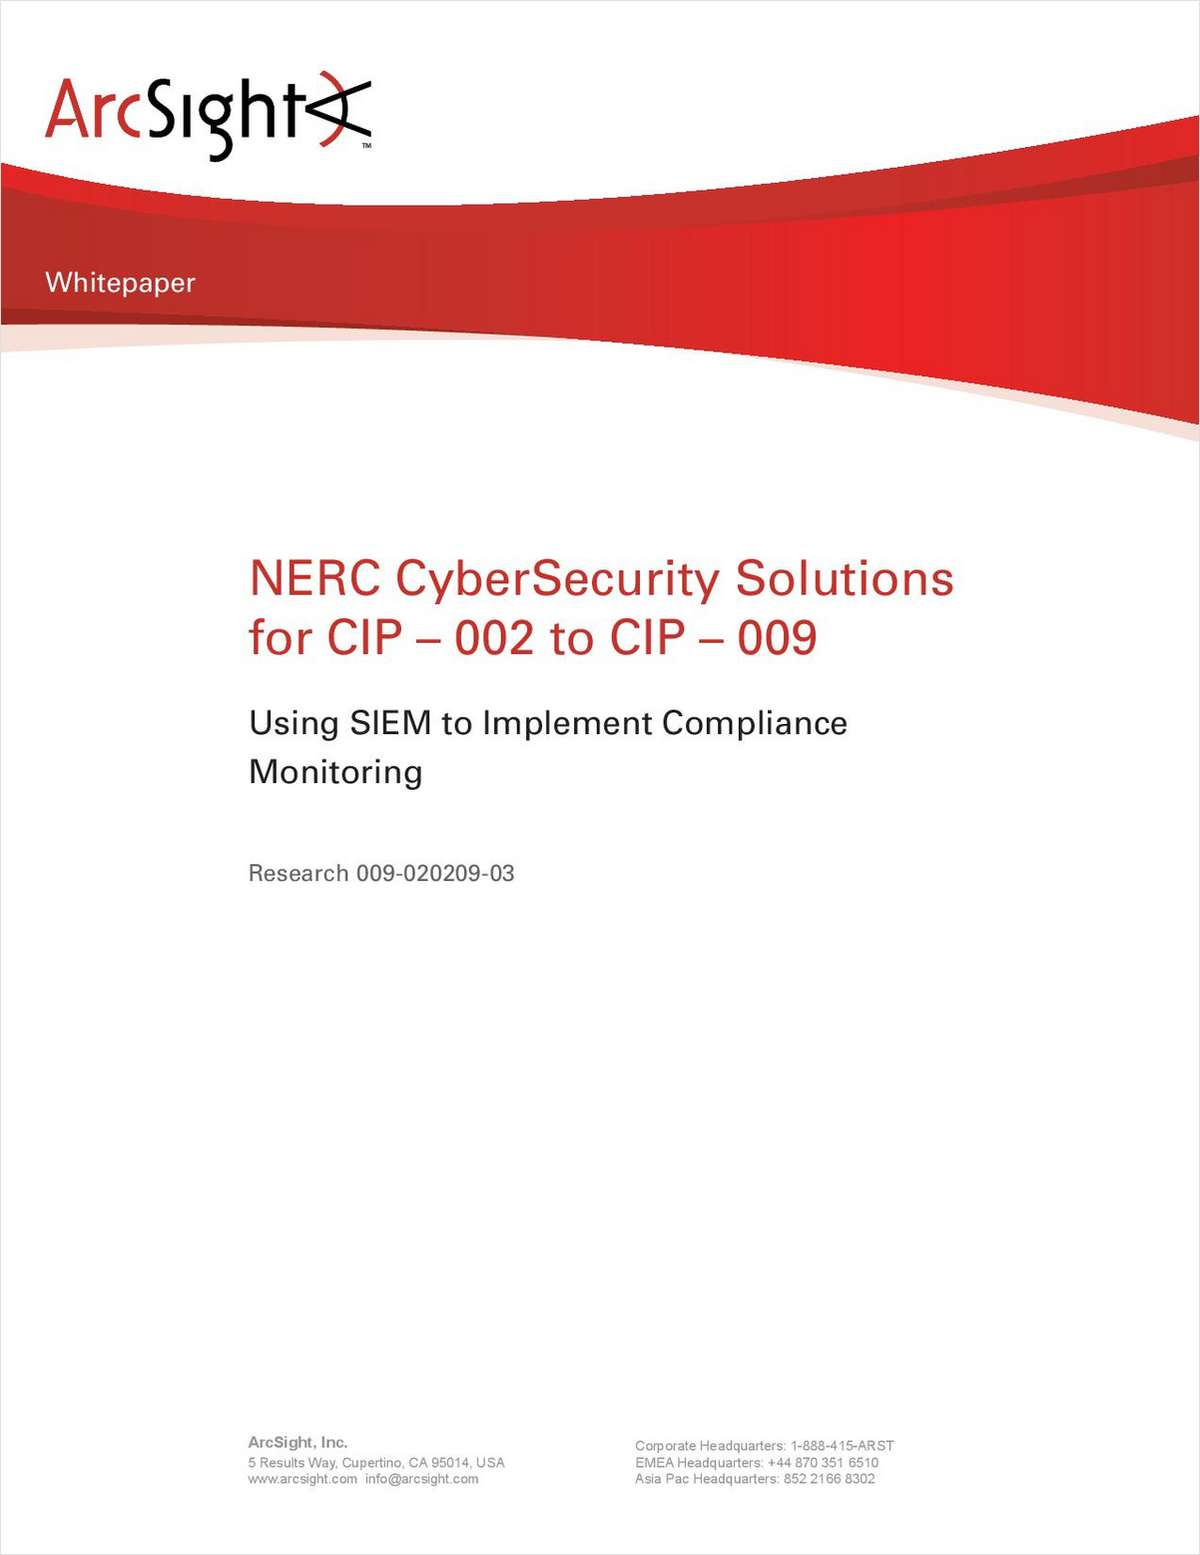 NERC CyberSecurity Solutions for CIP 002 - CIP 009